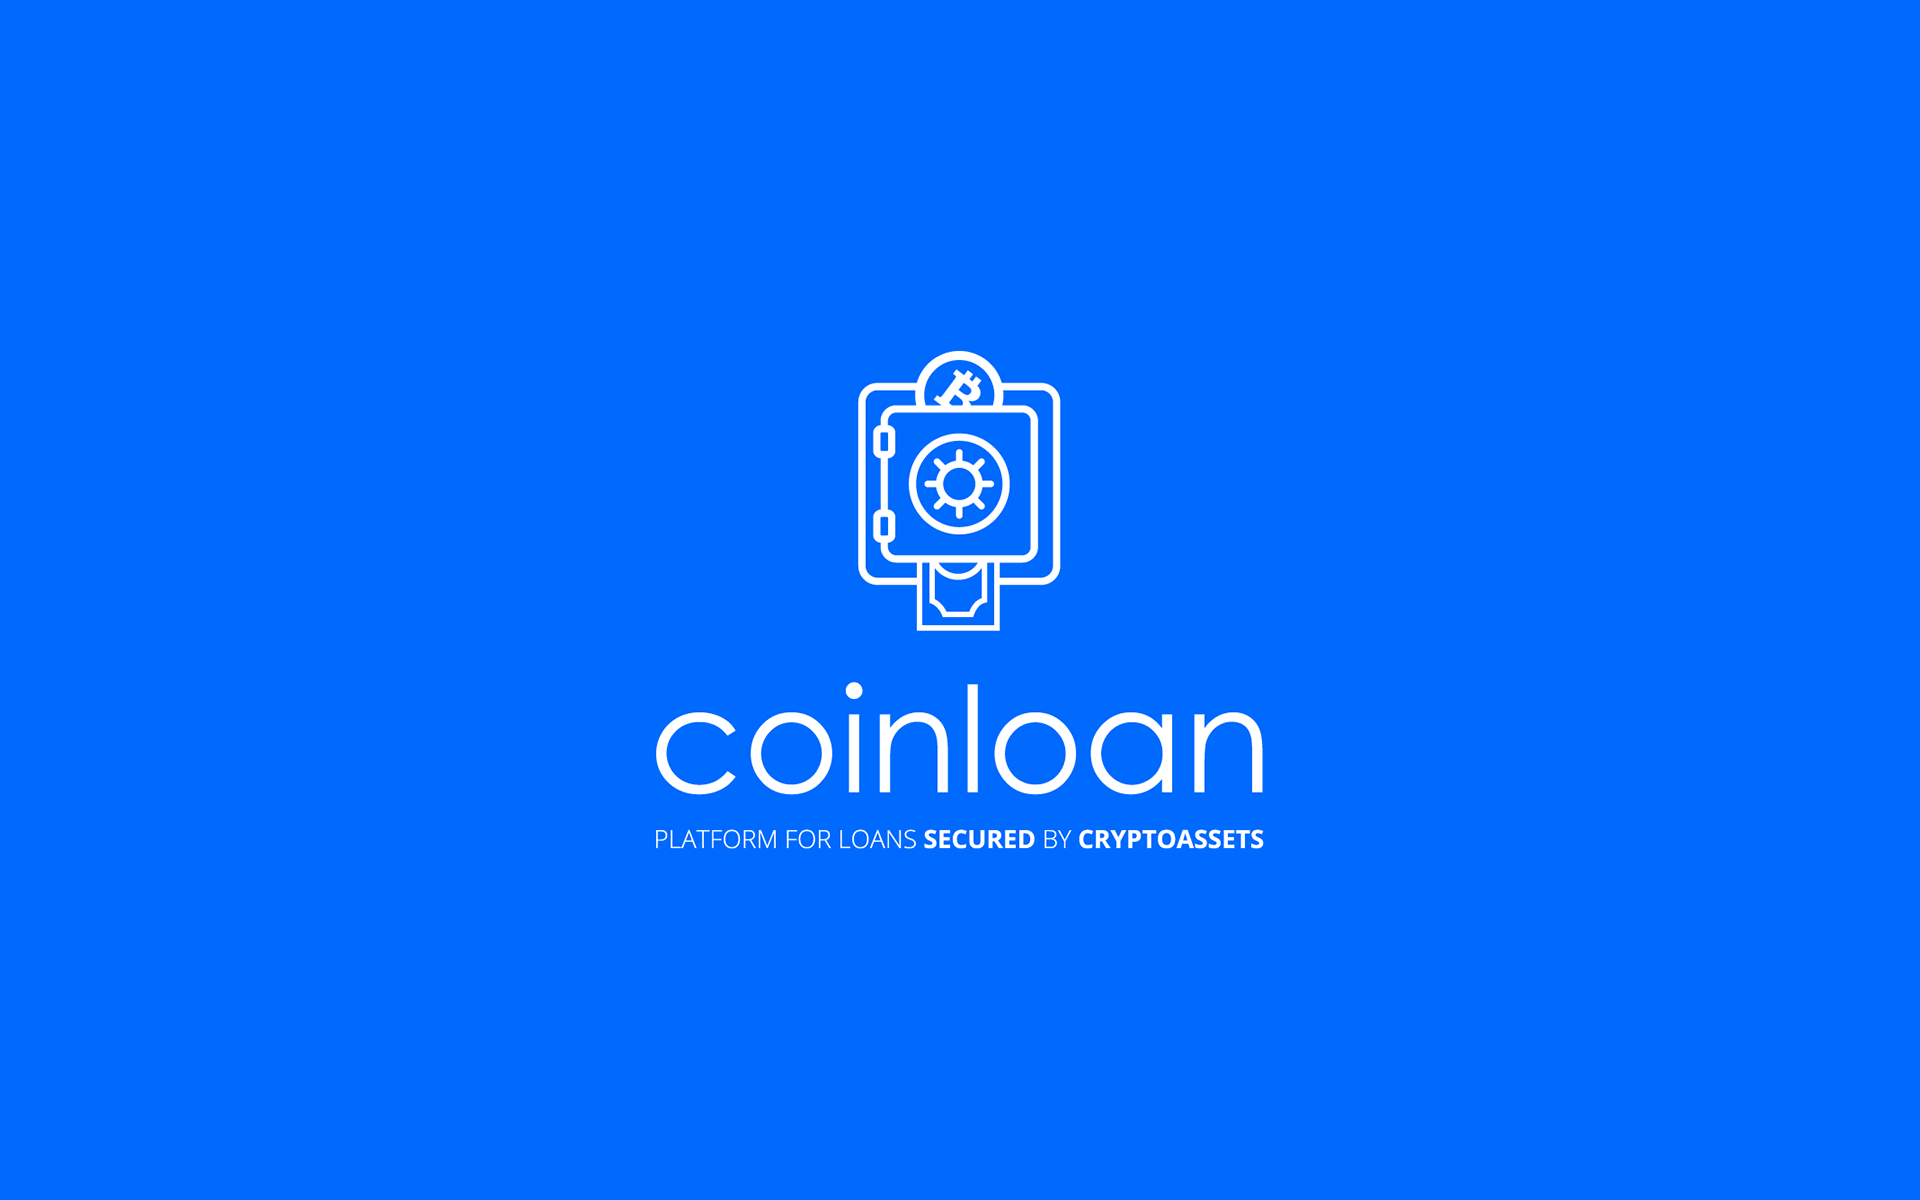 CoinLoan Launches Lending Platform Using Crypto Assets